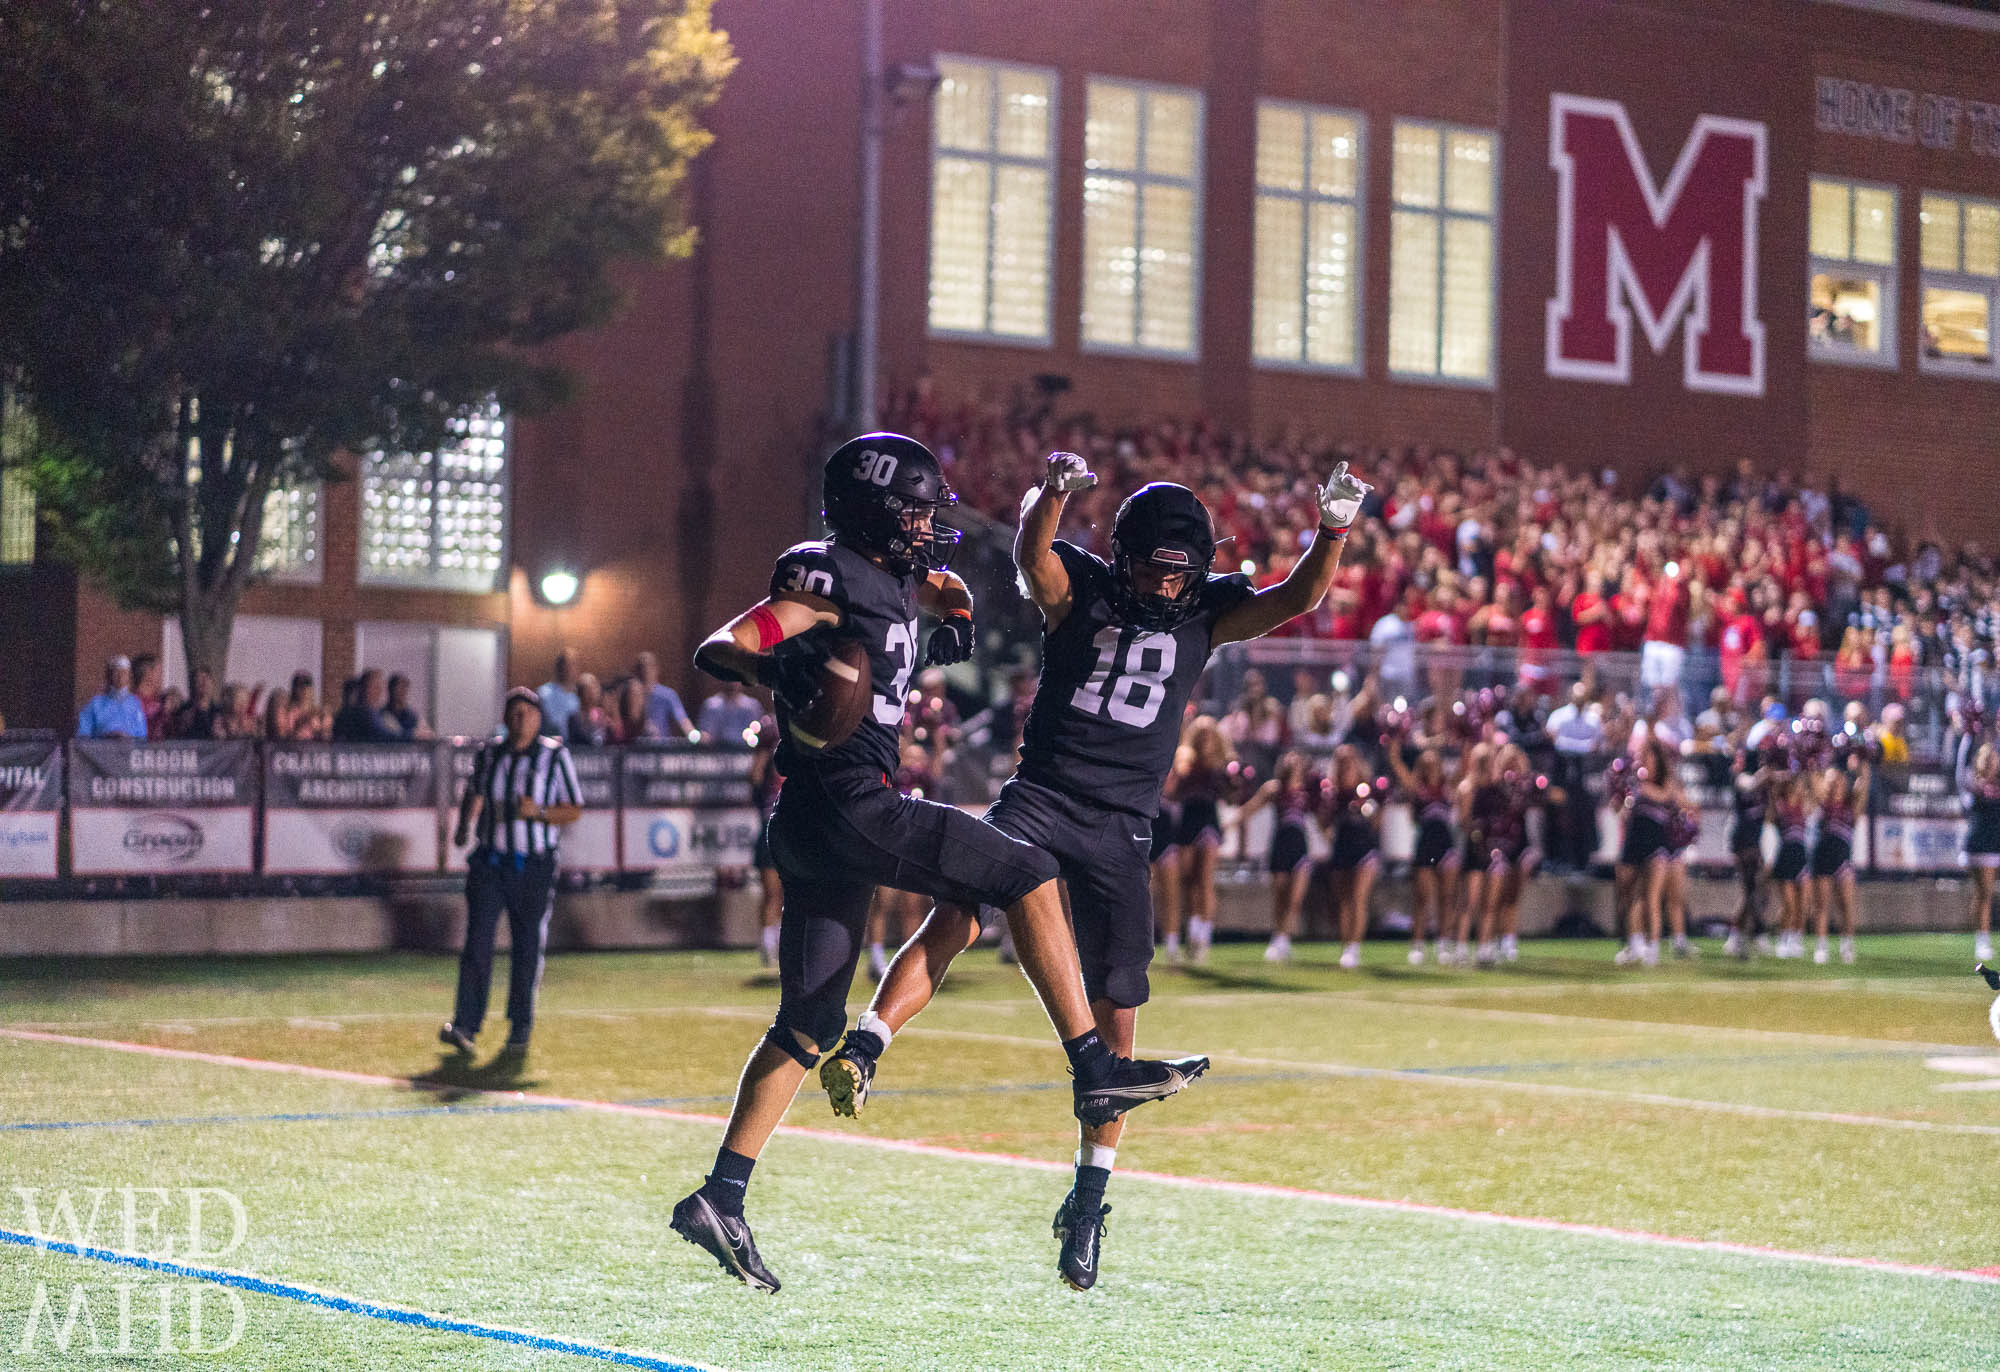 Marblehead's varsity football team takes the field under the Friday night lights with stands filled again